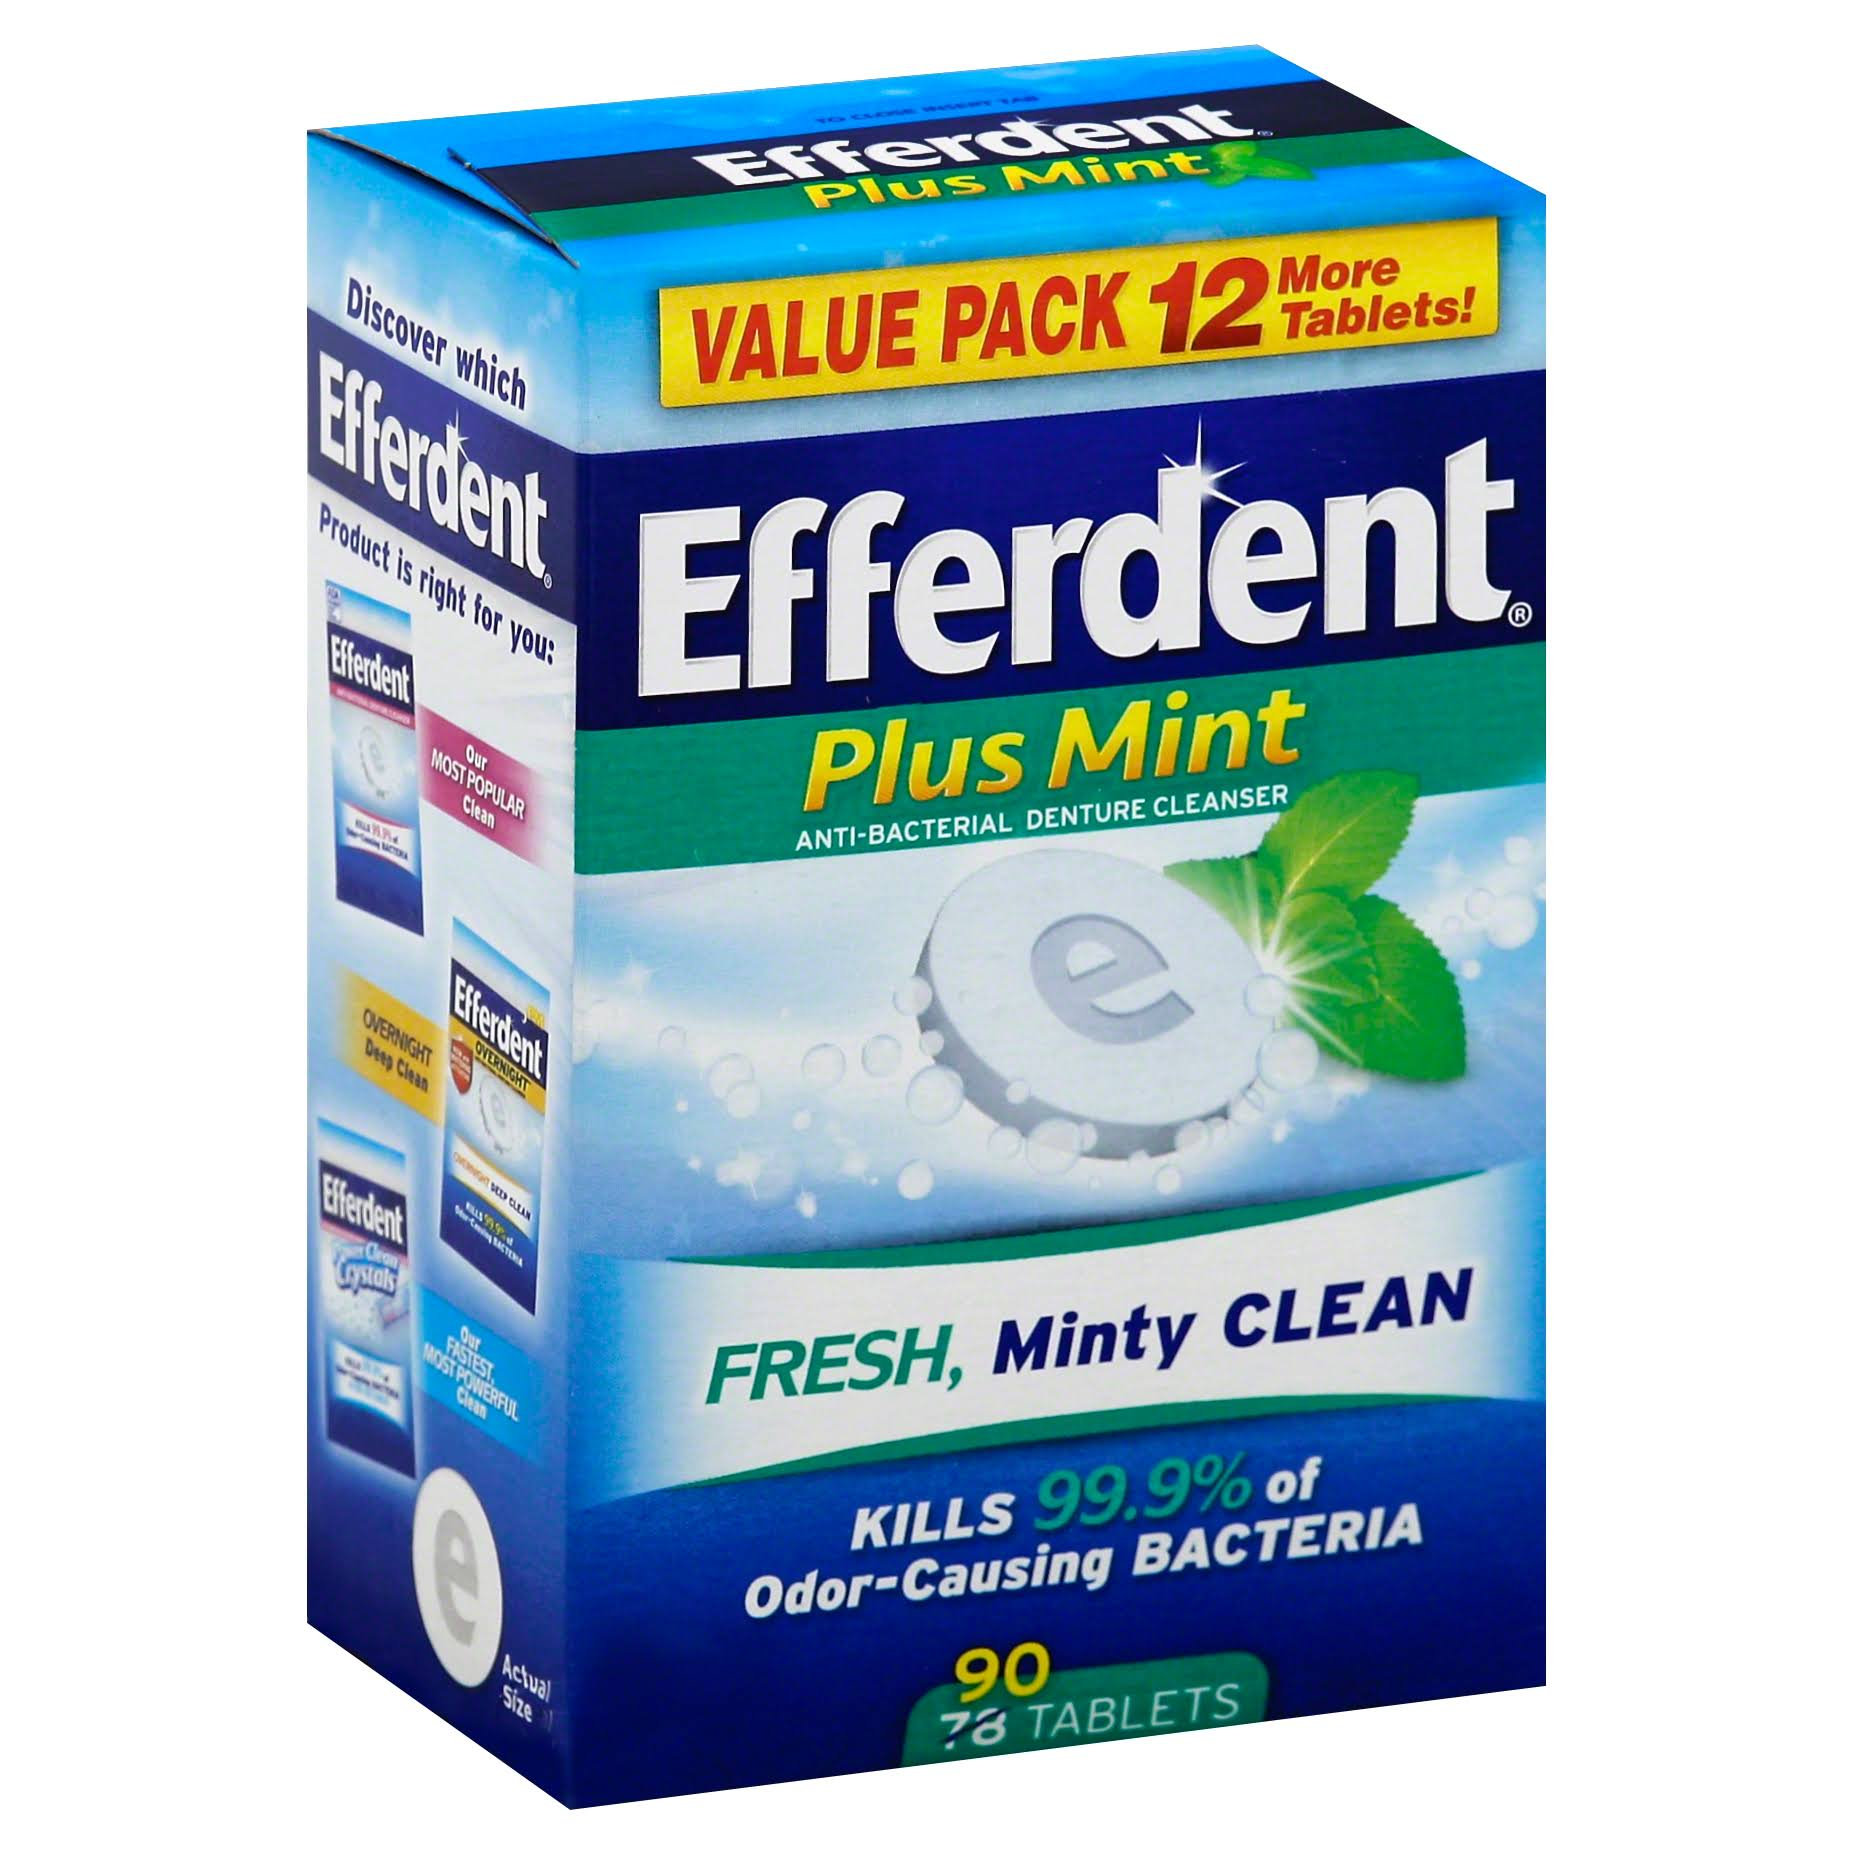 Efferdent Plus Mint Anti-Bacterial Denture Cleanser - 90 ct